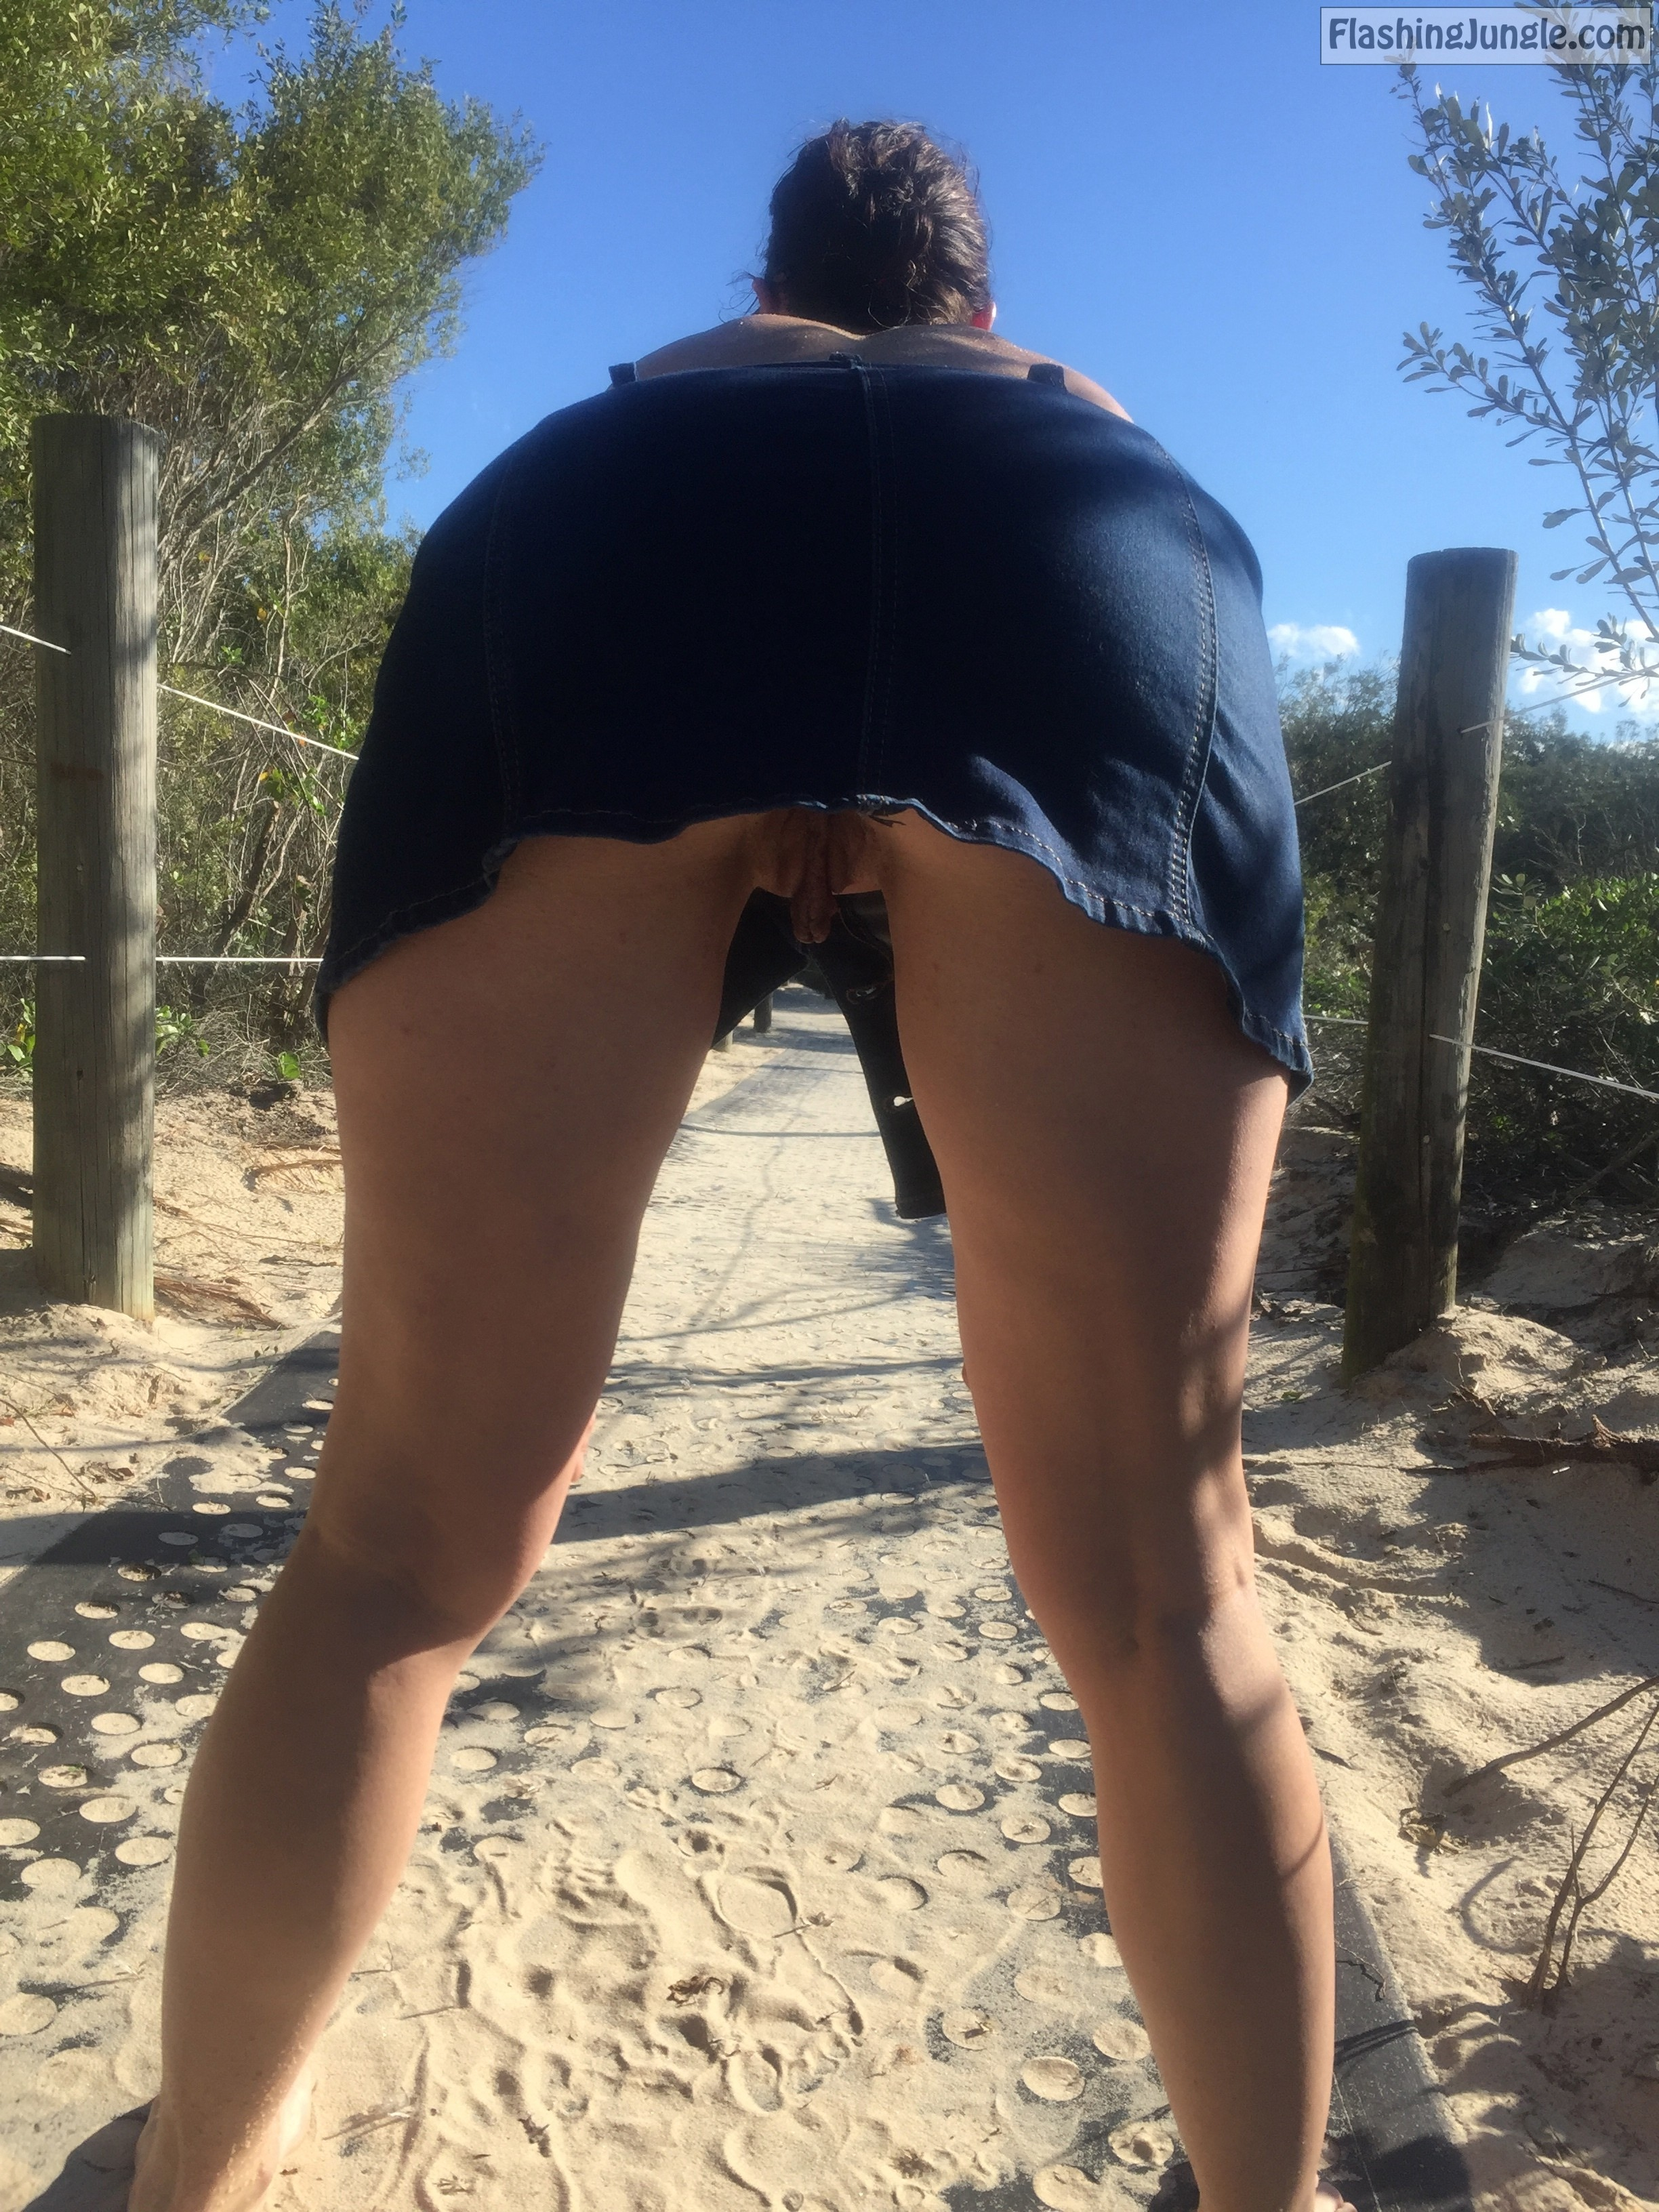 outdoors beach upskirt upskirt real nudity pussy flash public flashing nude beach no panties milf pics howife bitch